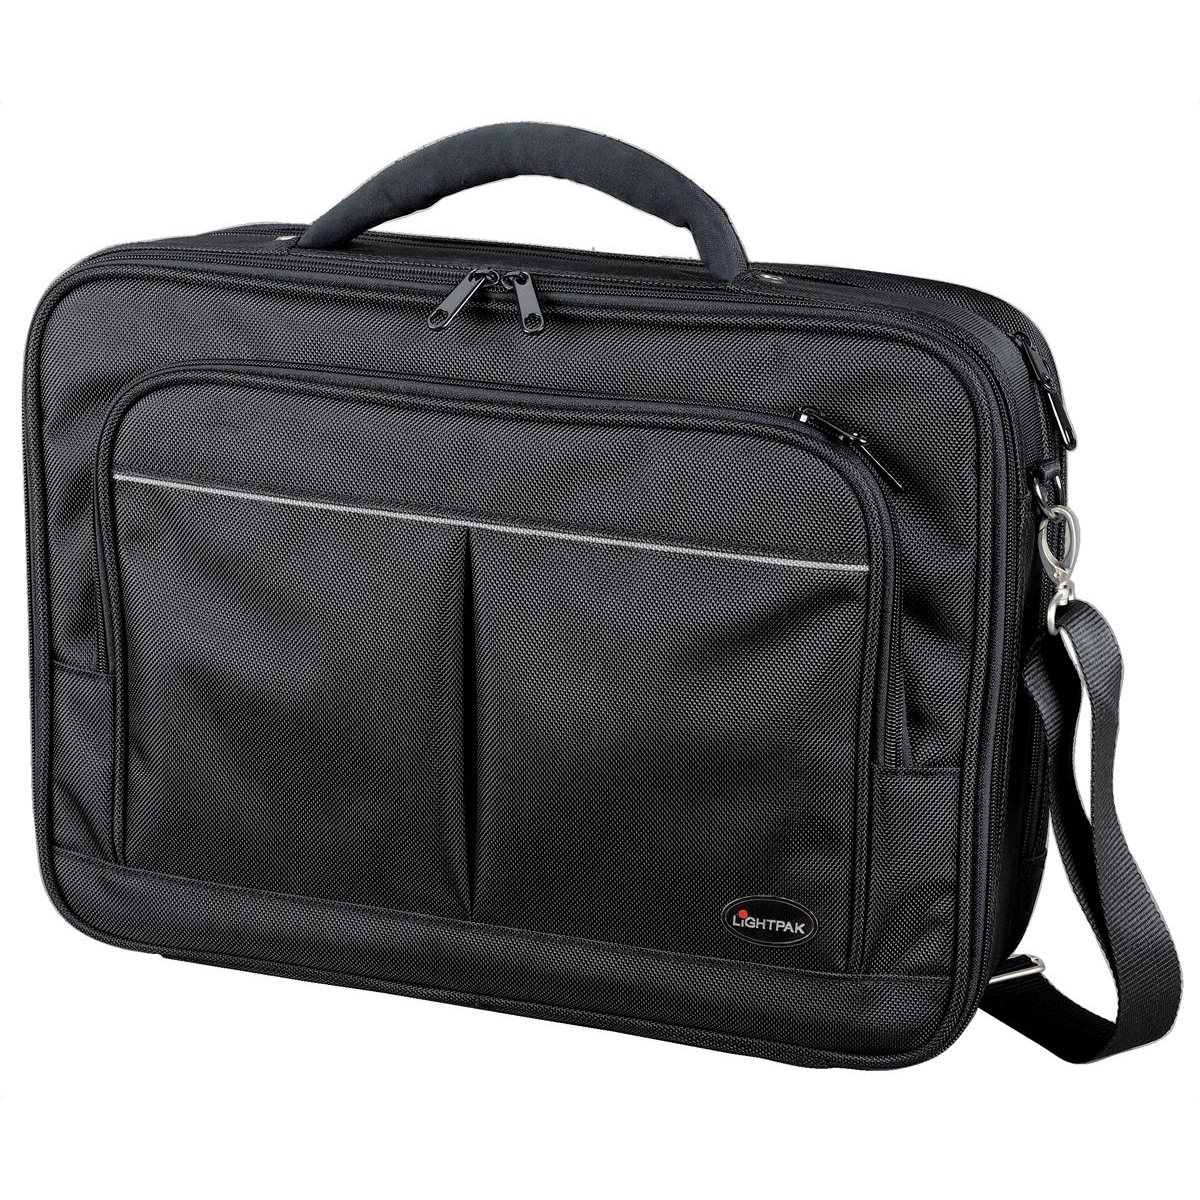 Briefcases & Luggage Lightpak Executive Laptop Bag Padded Multi-section Nylon Capacity 17in Black Ref 46029